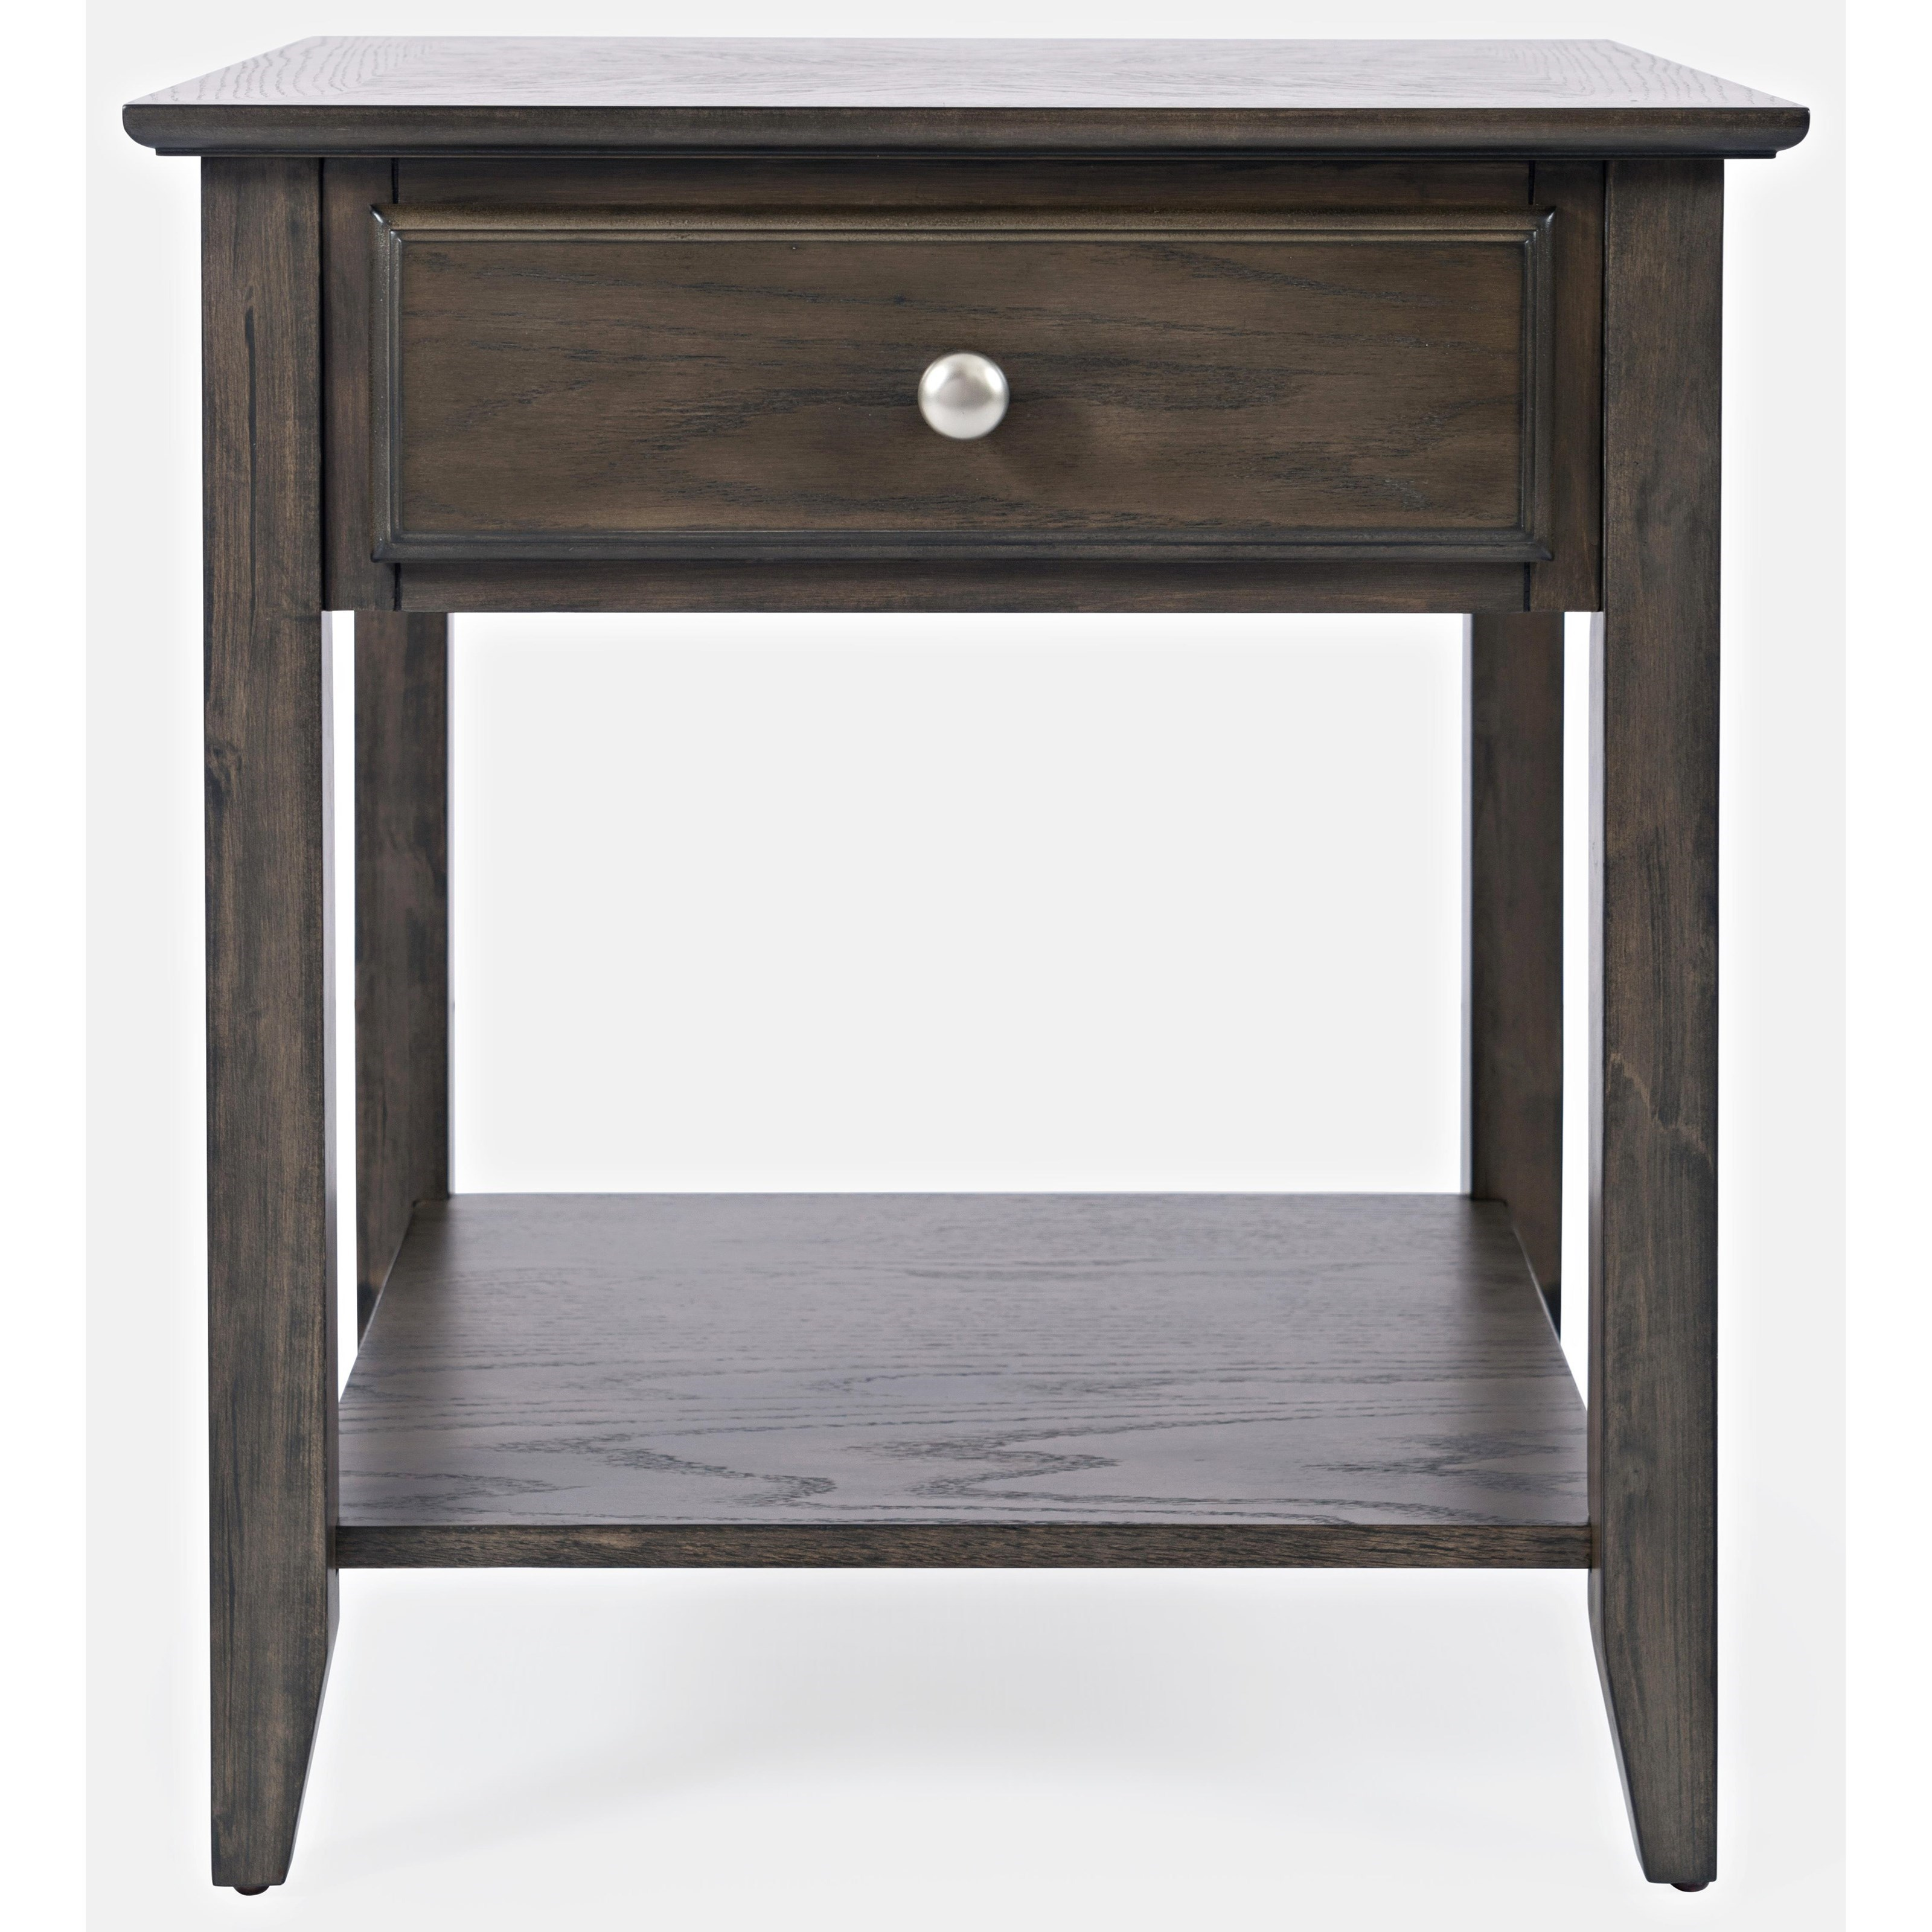 Carlton End Table w/ Drawer by Jofran at Value City Furniture